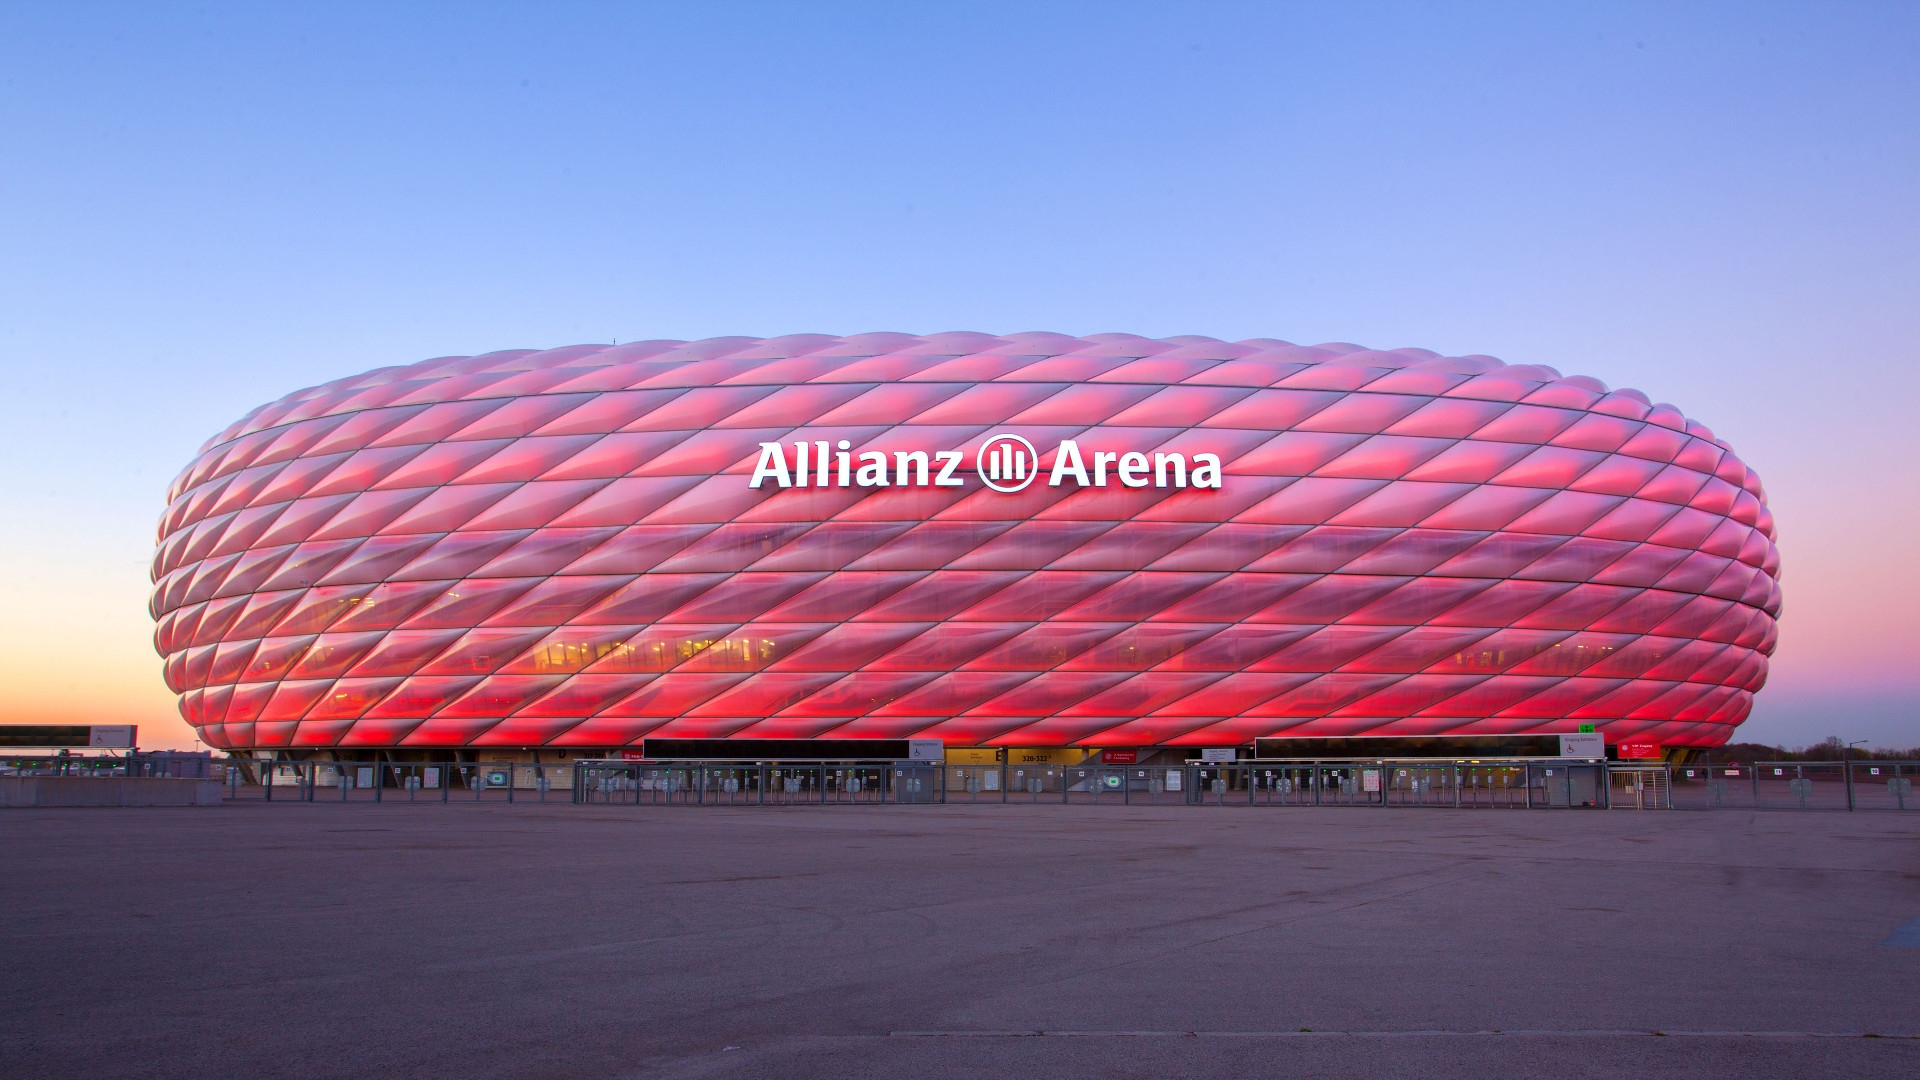 The Allianz arena in all its beauty. Image: Allianz Arena.